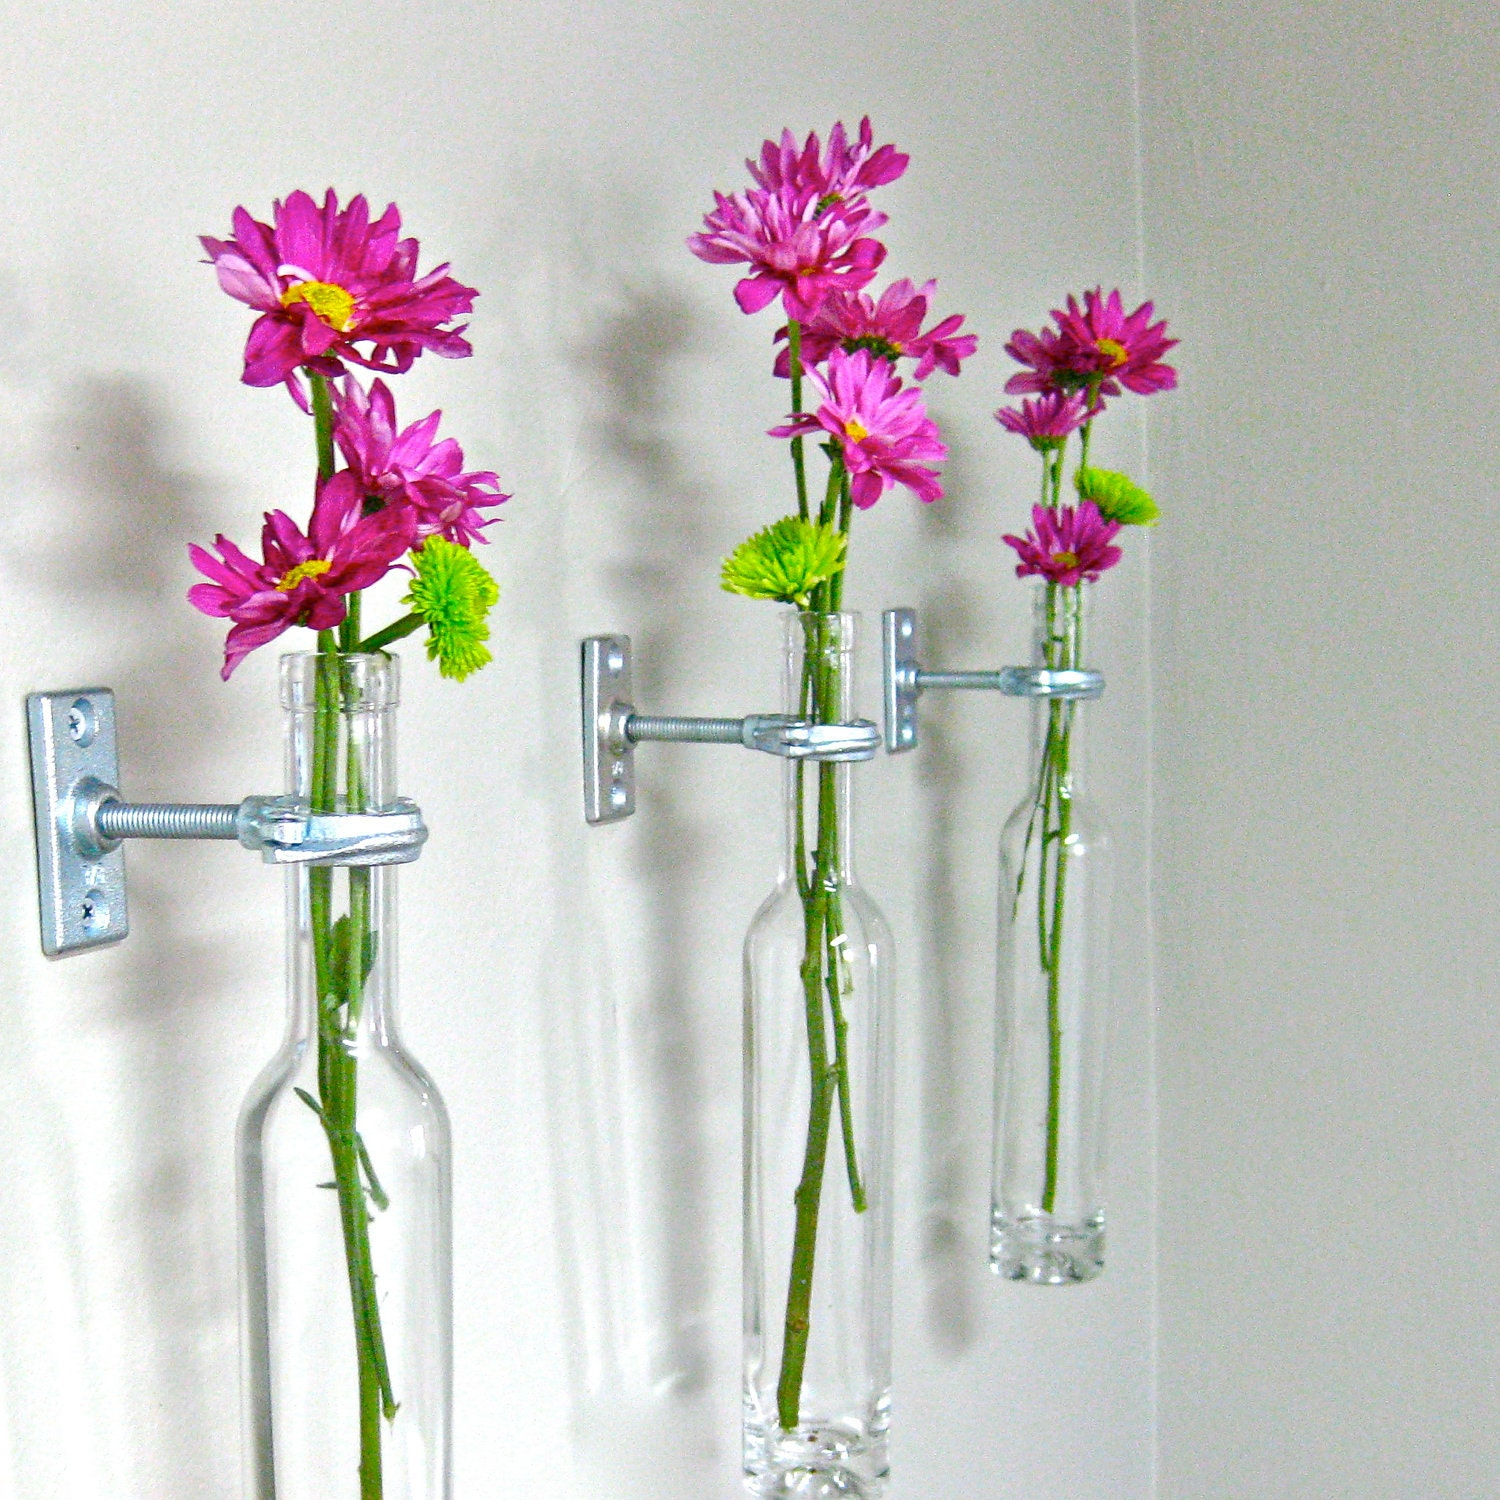 12 wine bottle wall flower vases wall vase wall decor - Great decorative flower vase designs ...